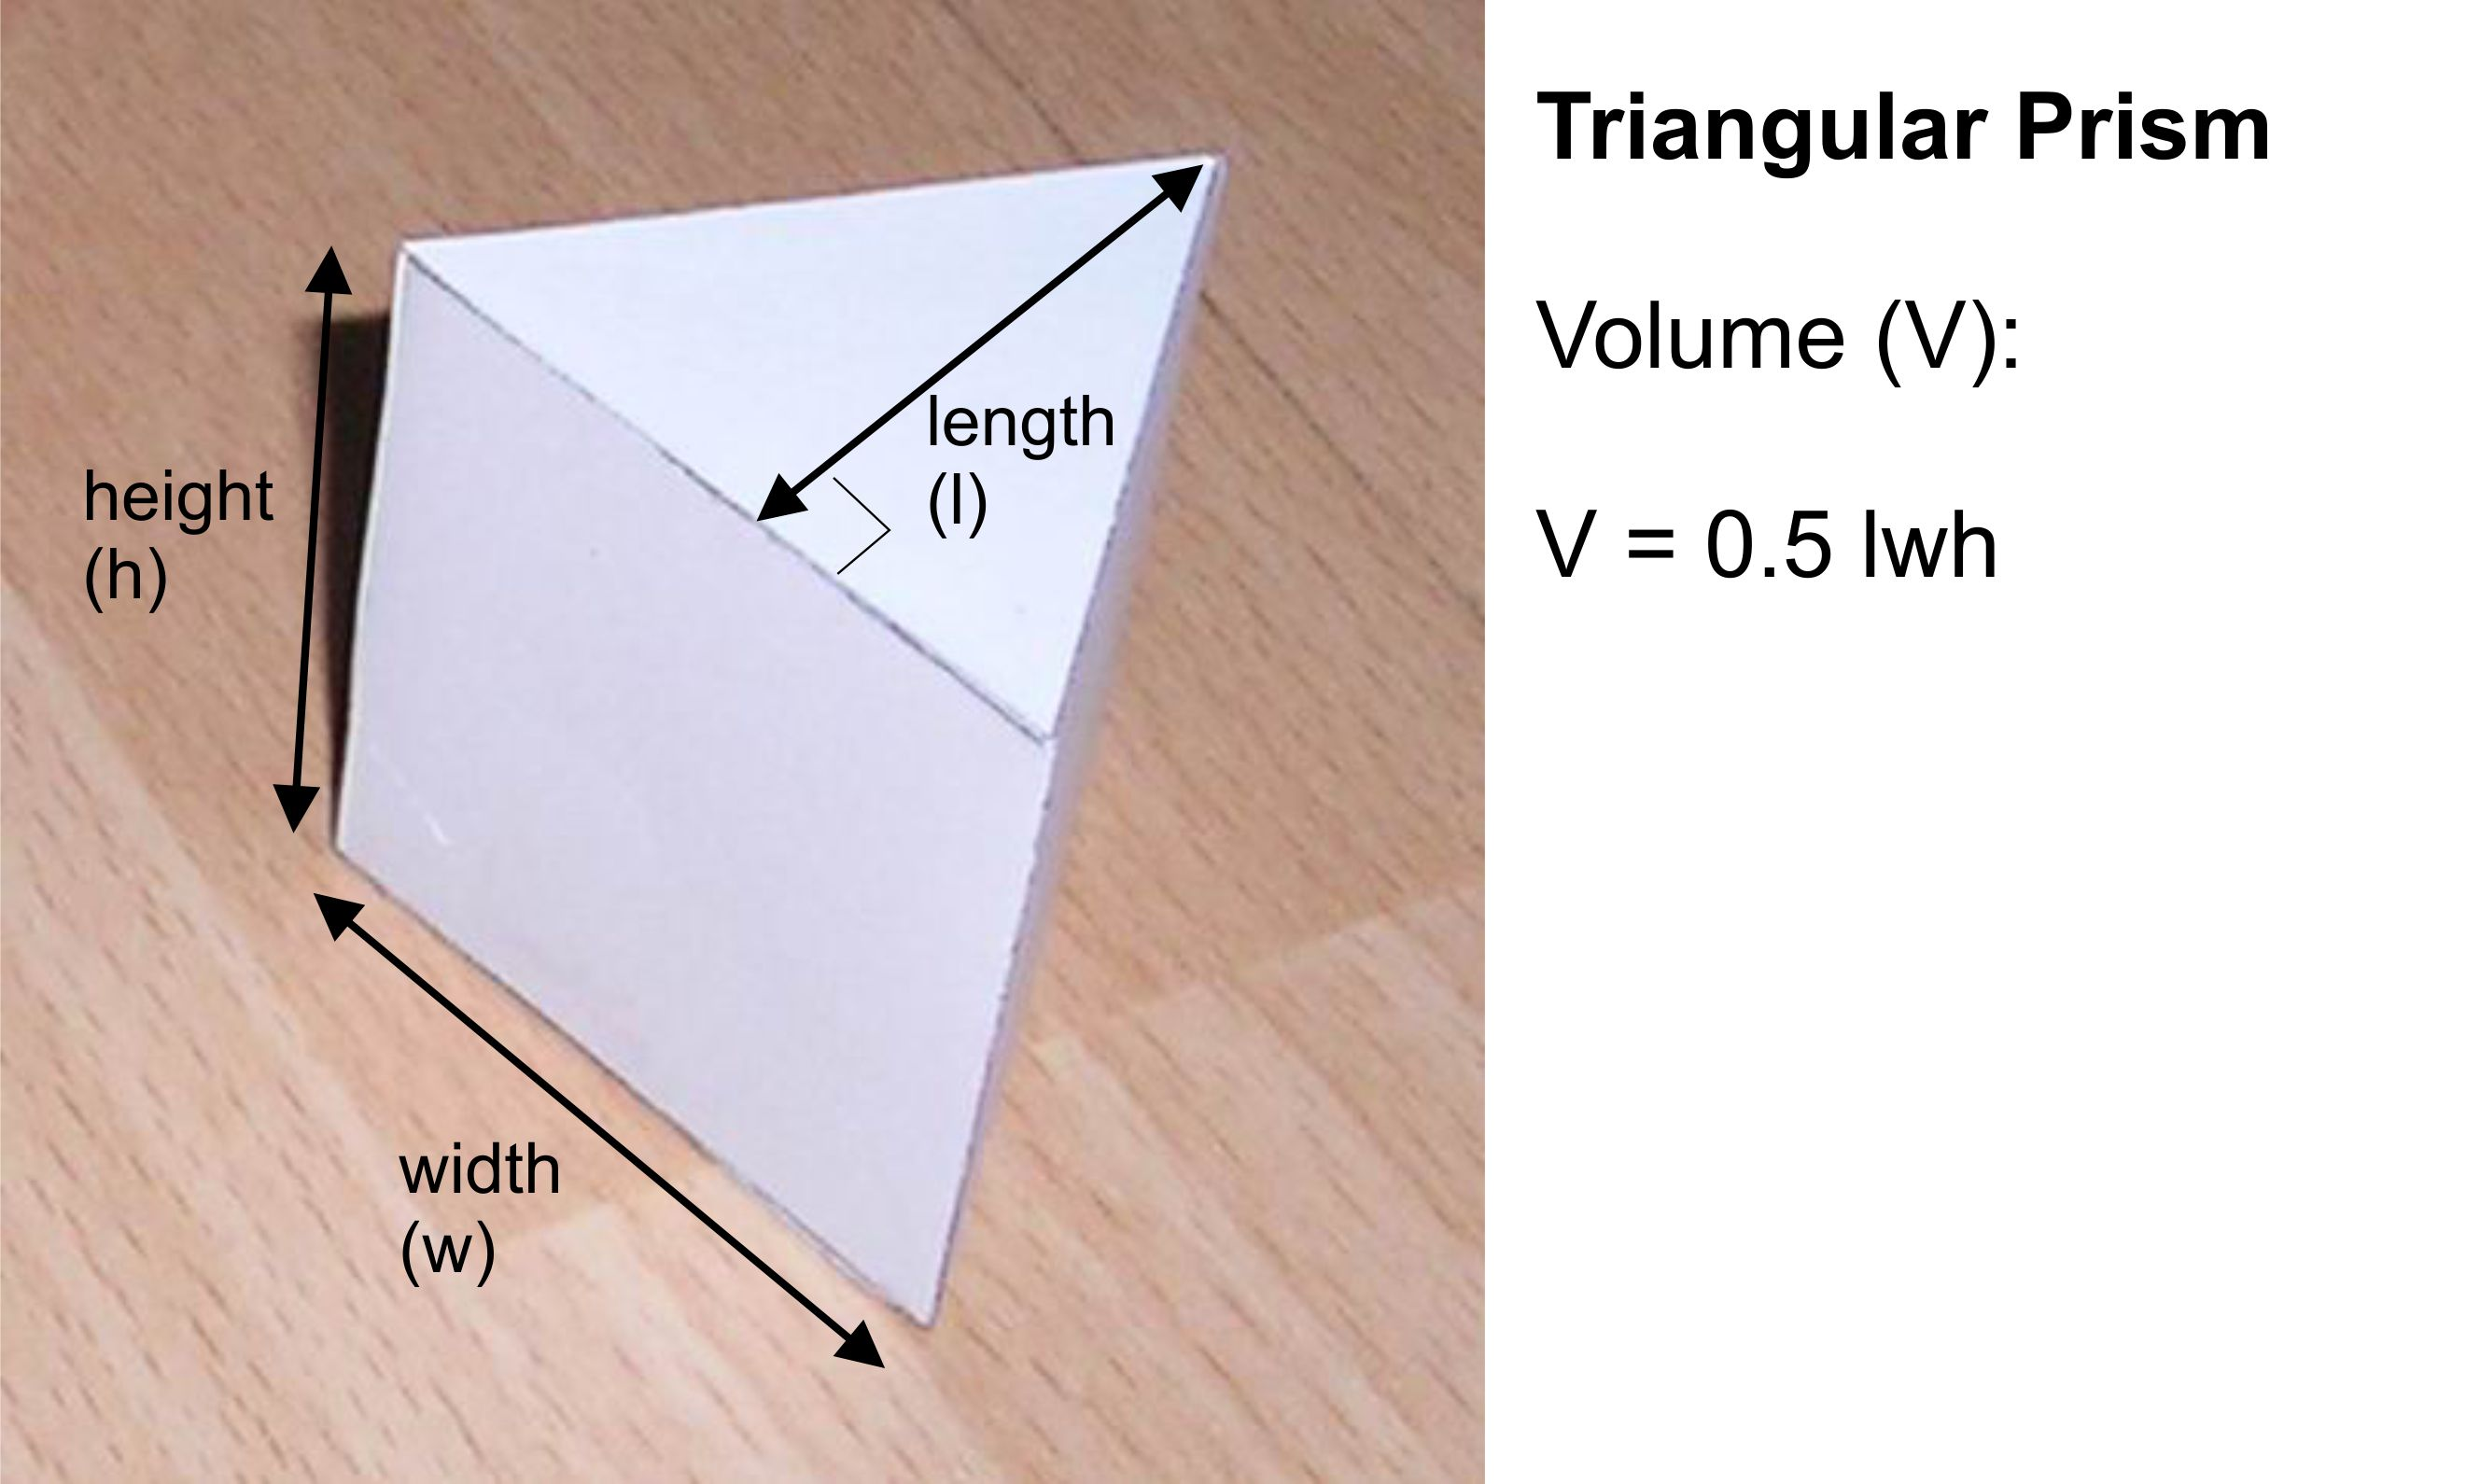 graphic about Triangular Prism Net Printable known as Paper Triangular Prism